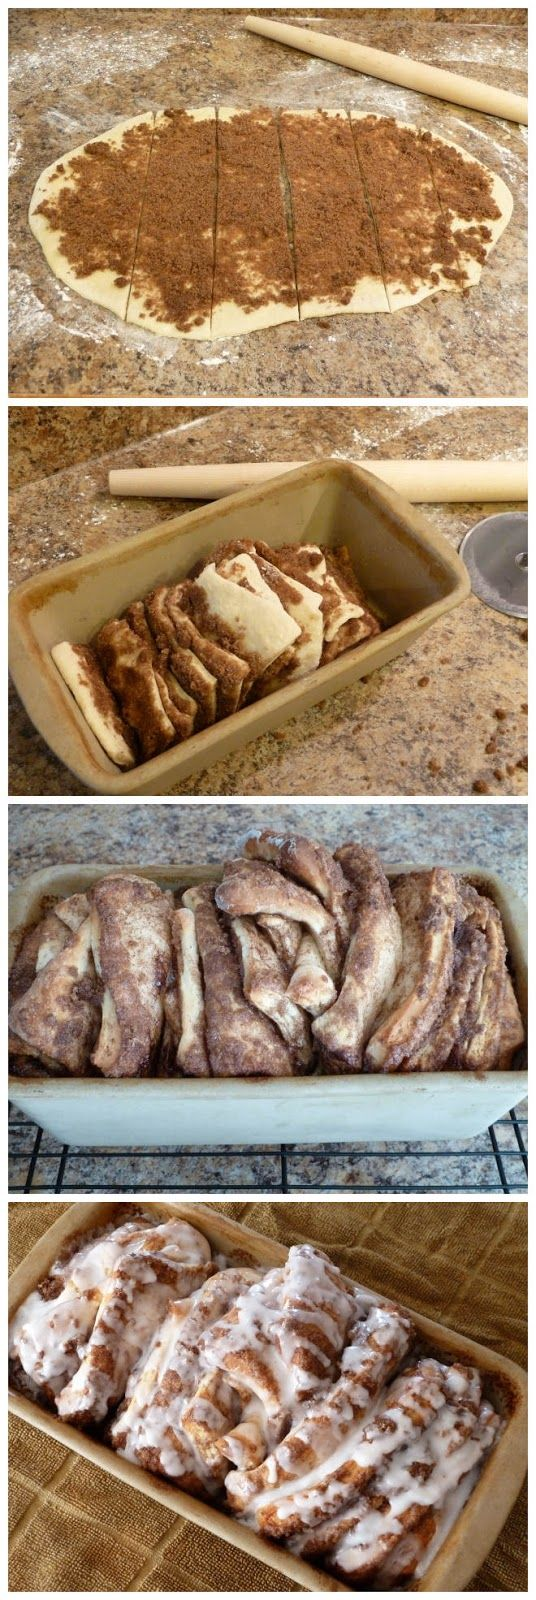 Cinnamon Pull-Apart Bread - use homemade recipe and bake like this for something different.